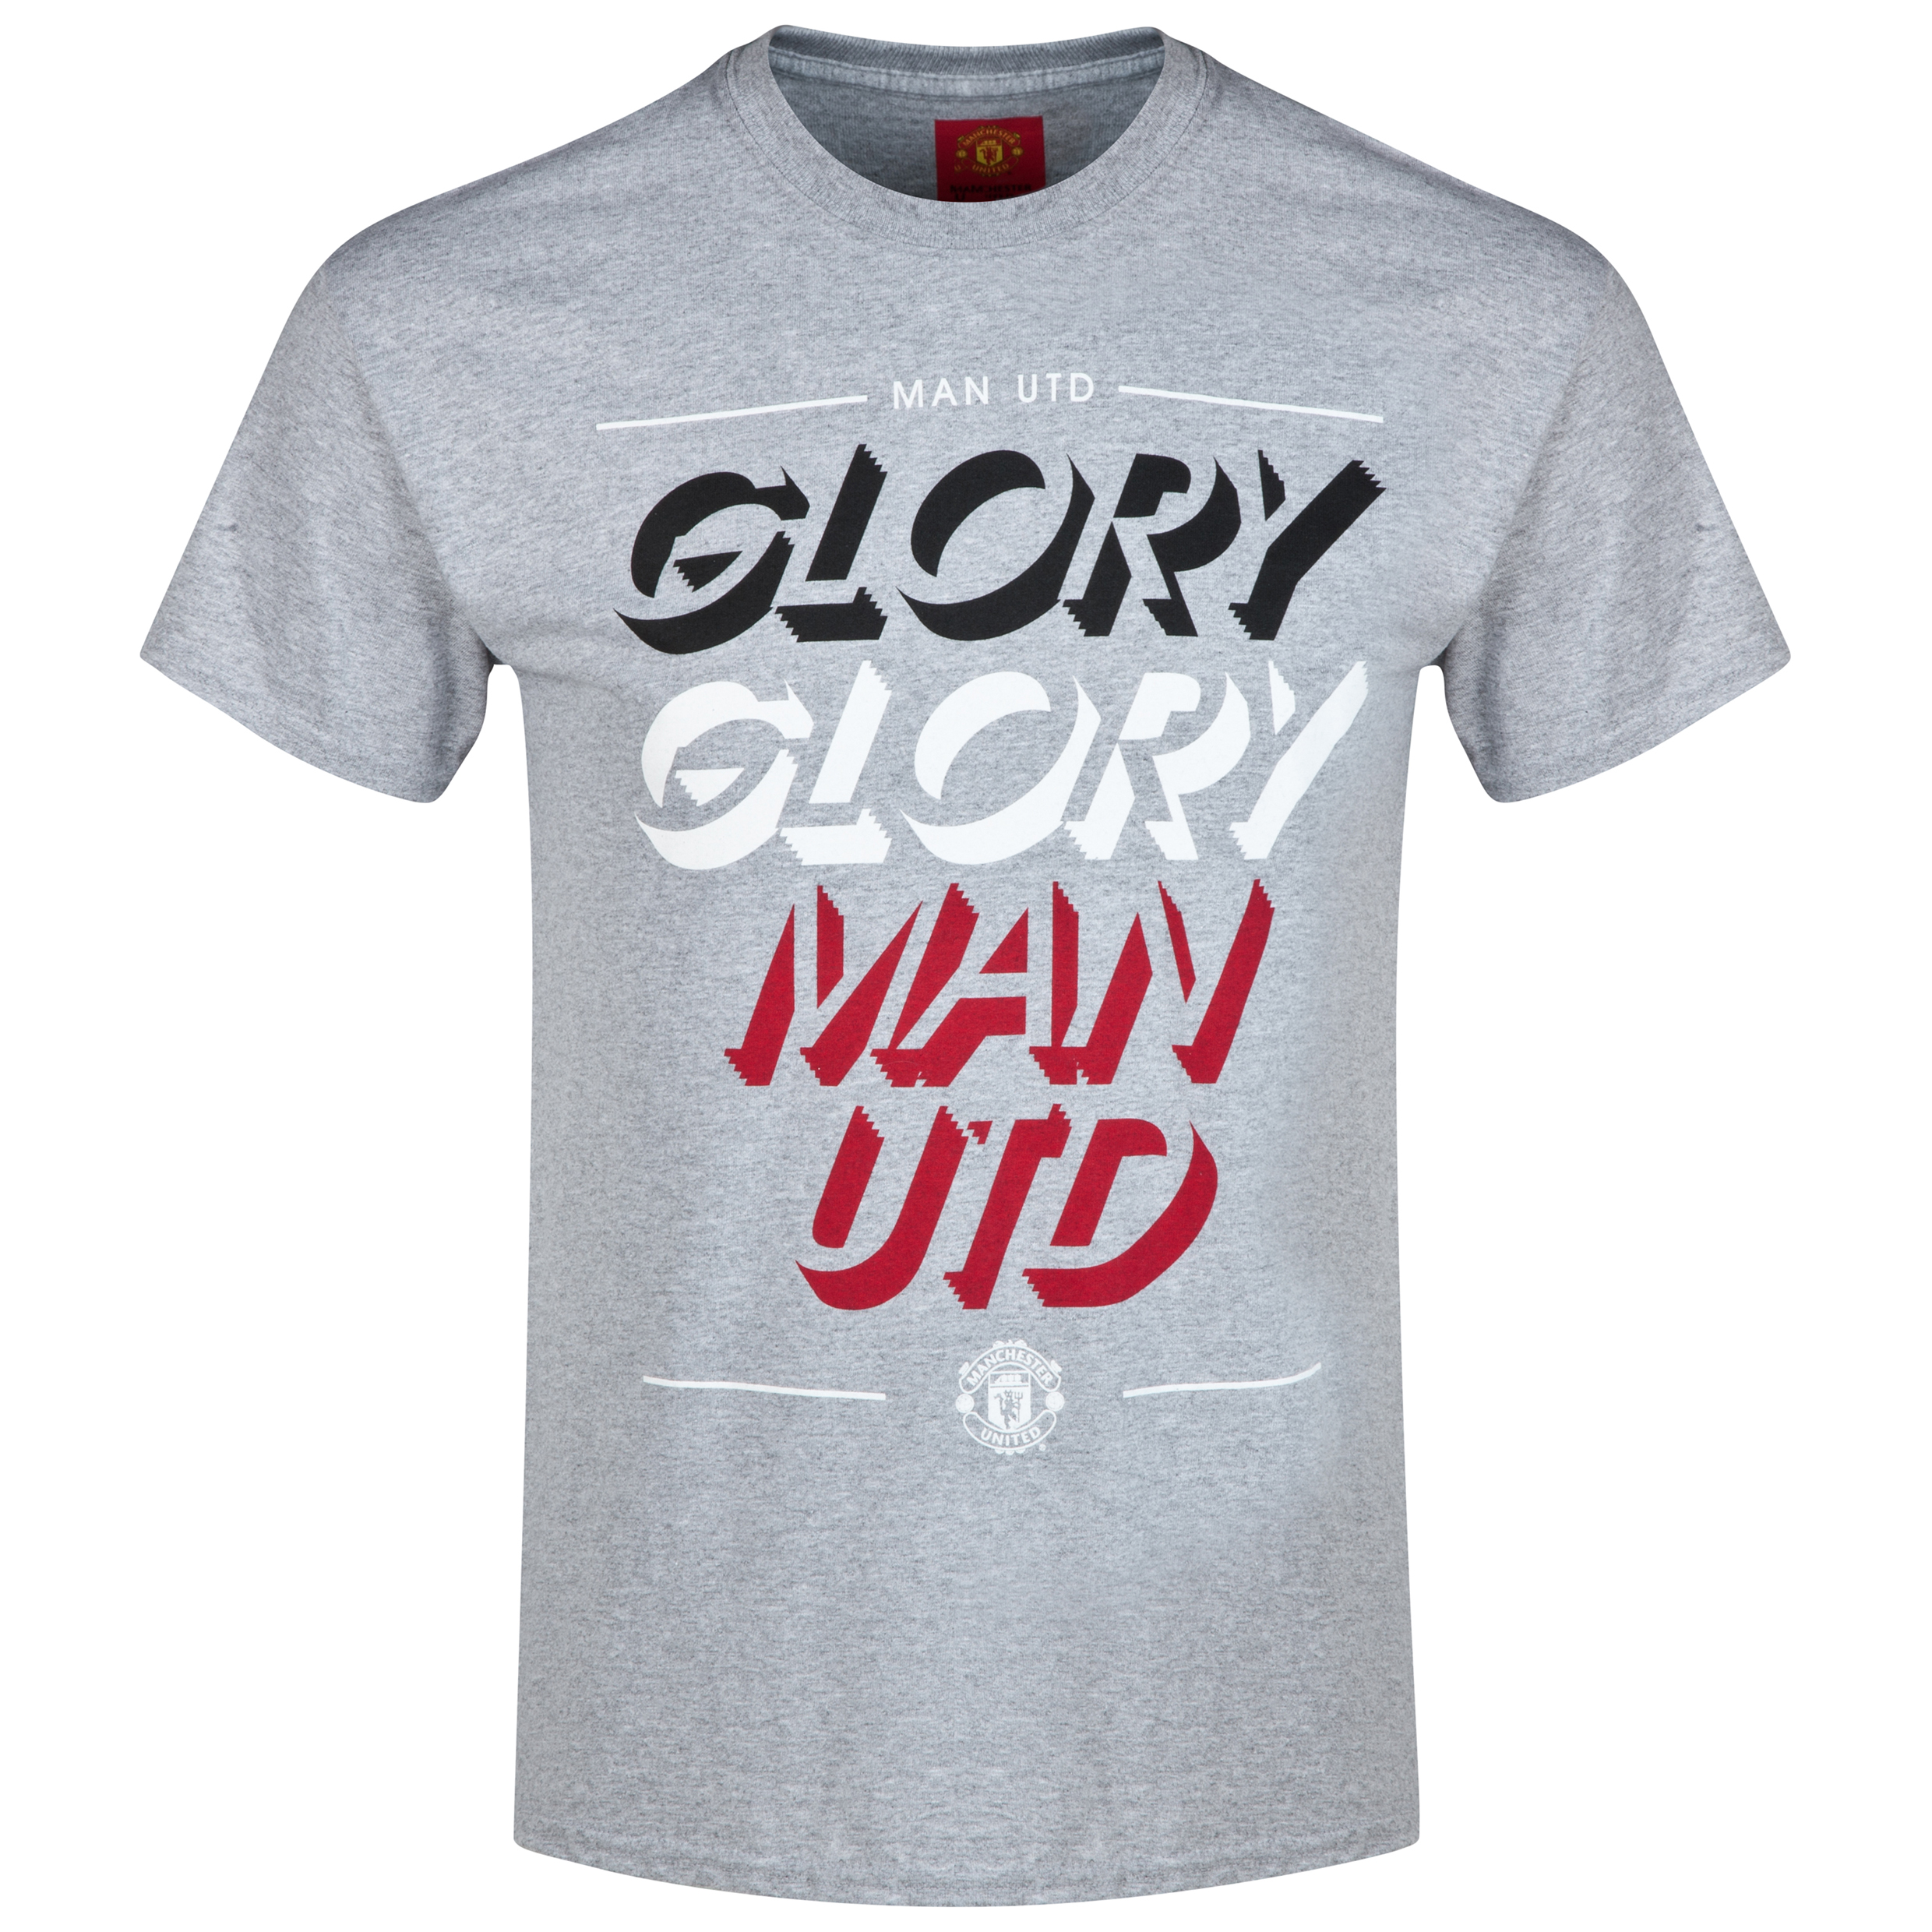 Manchester United Glory Glory Man Utd T-Shirt - Sports Grey - Boys